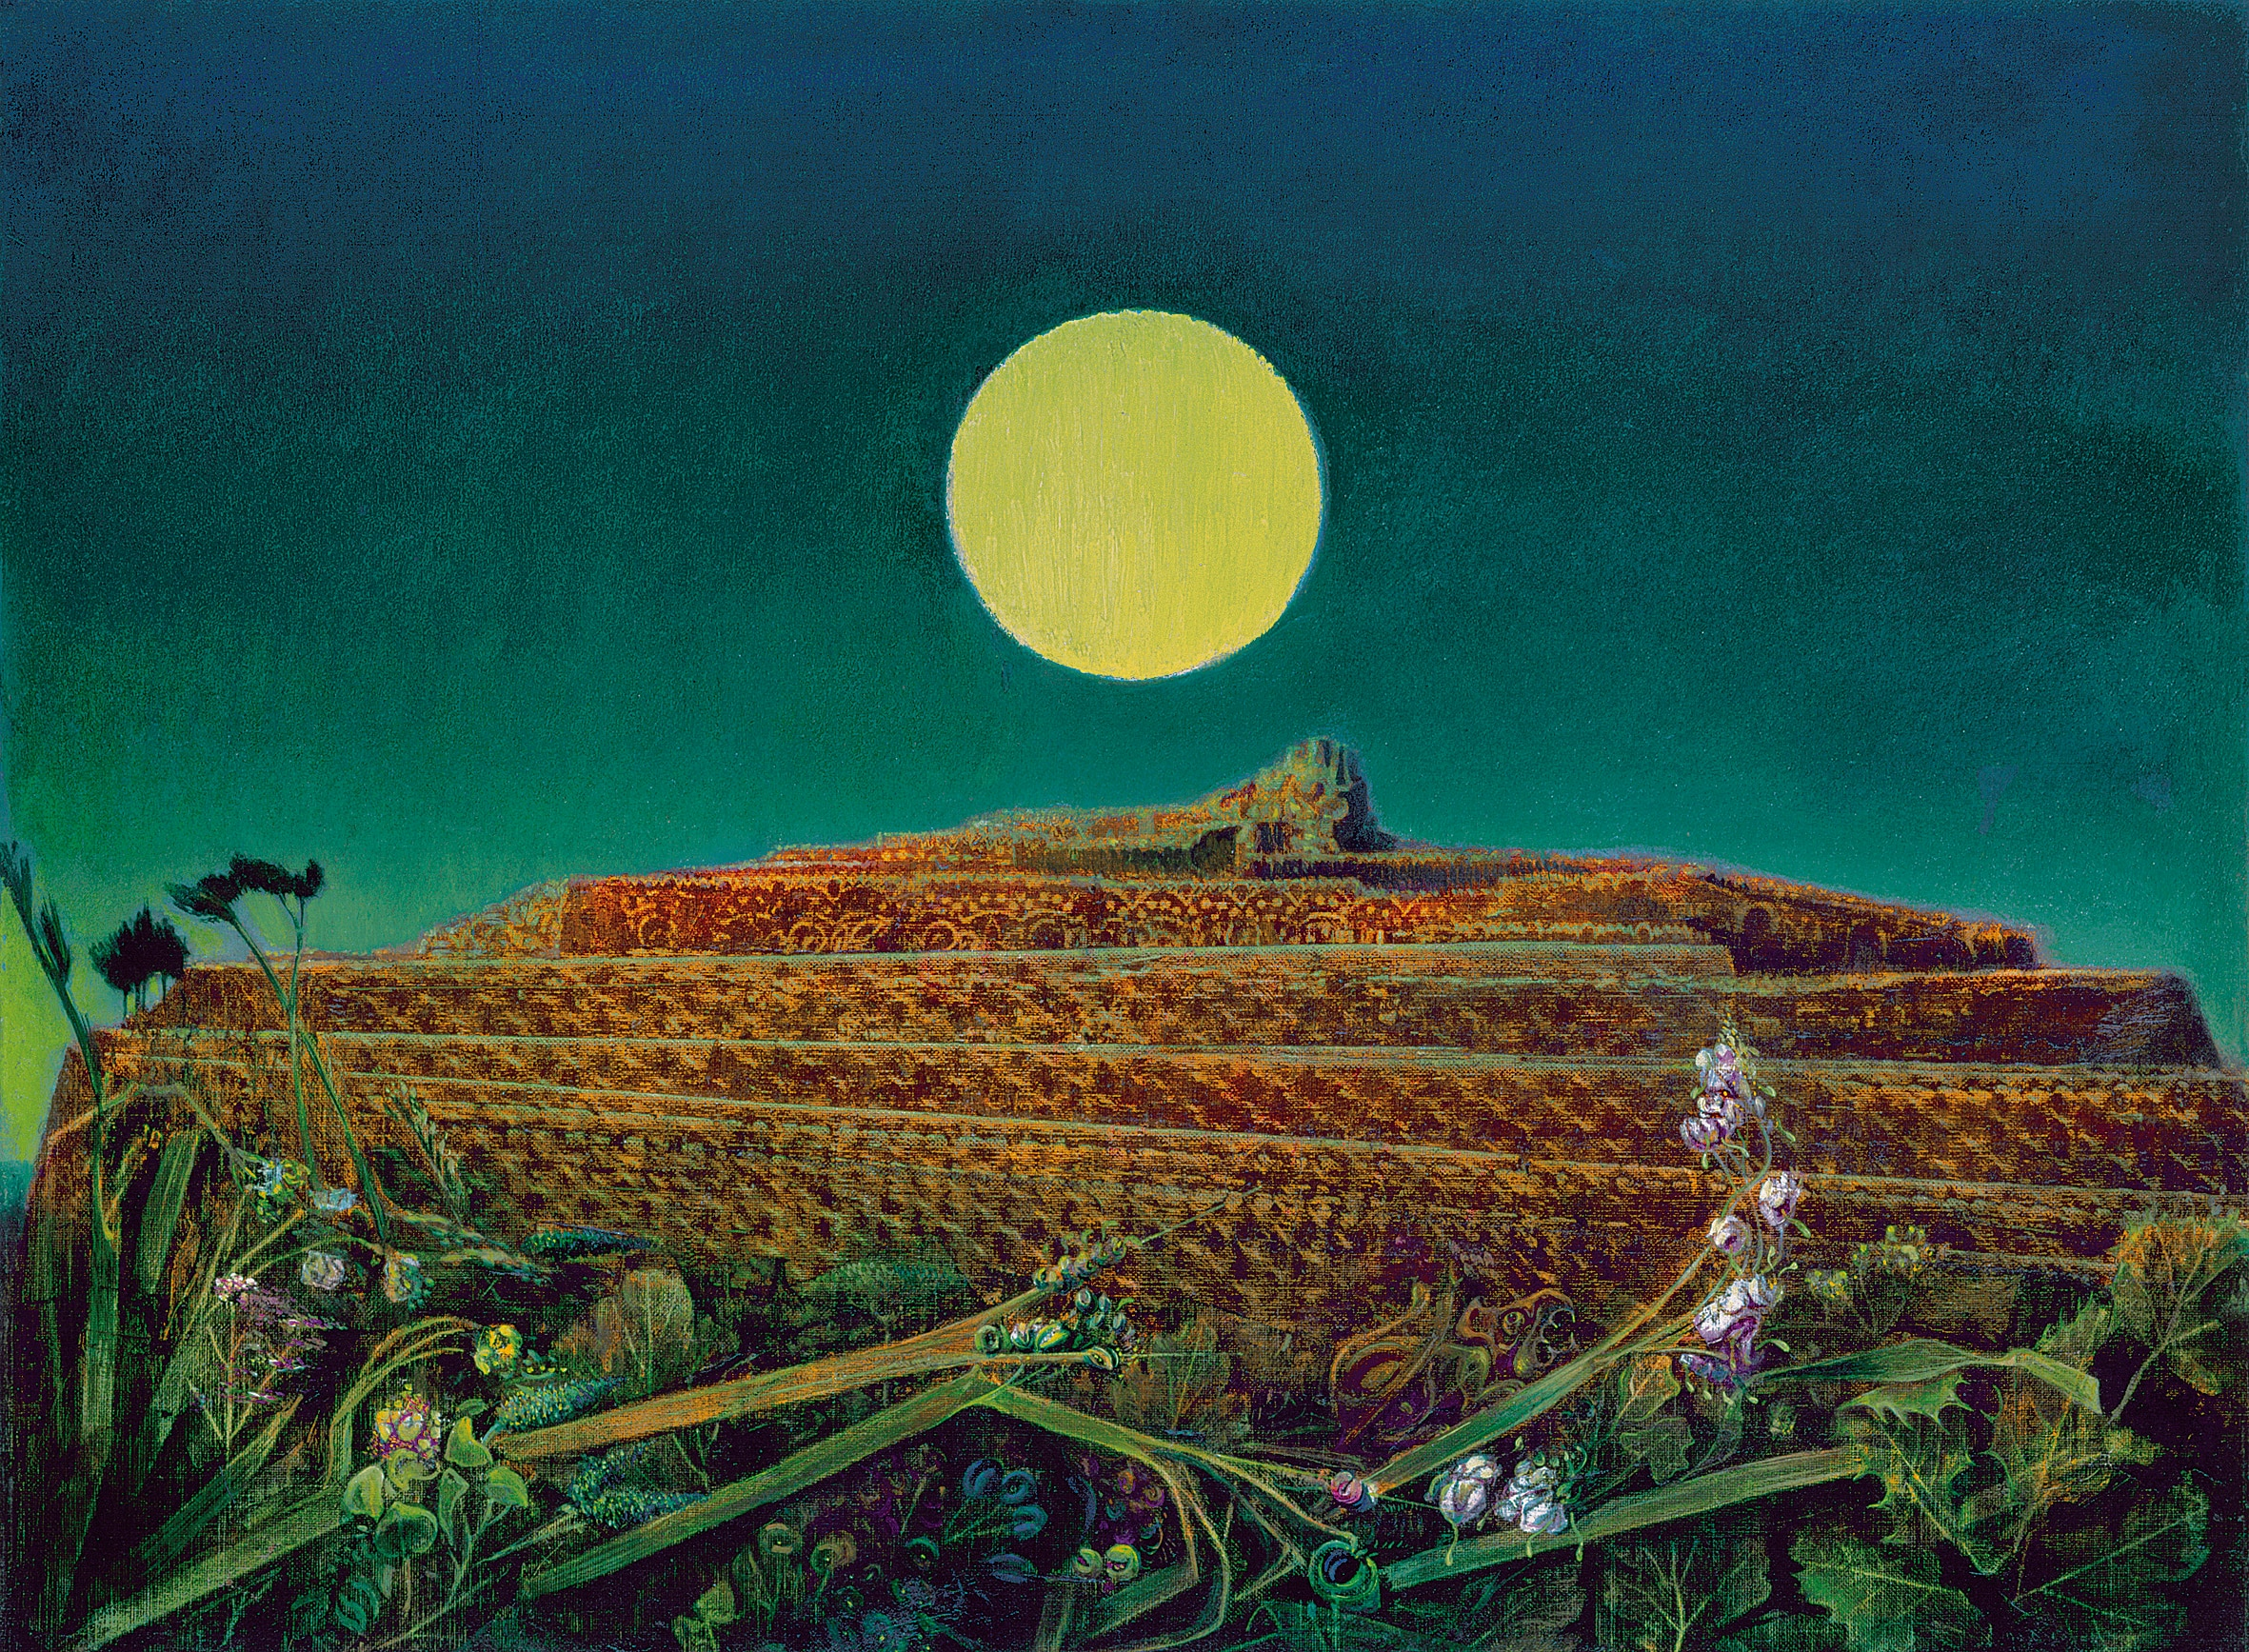 Max Ernst, The Entire City, 1935